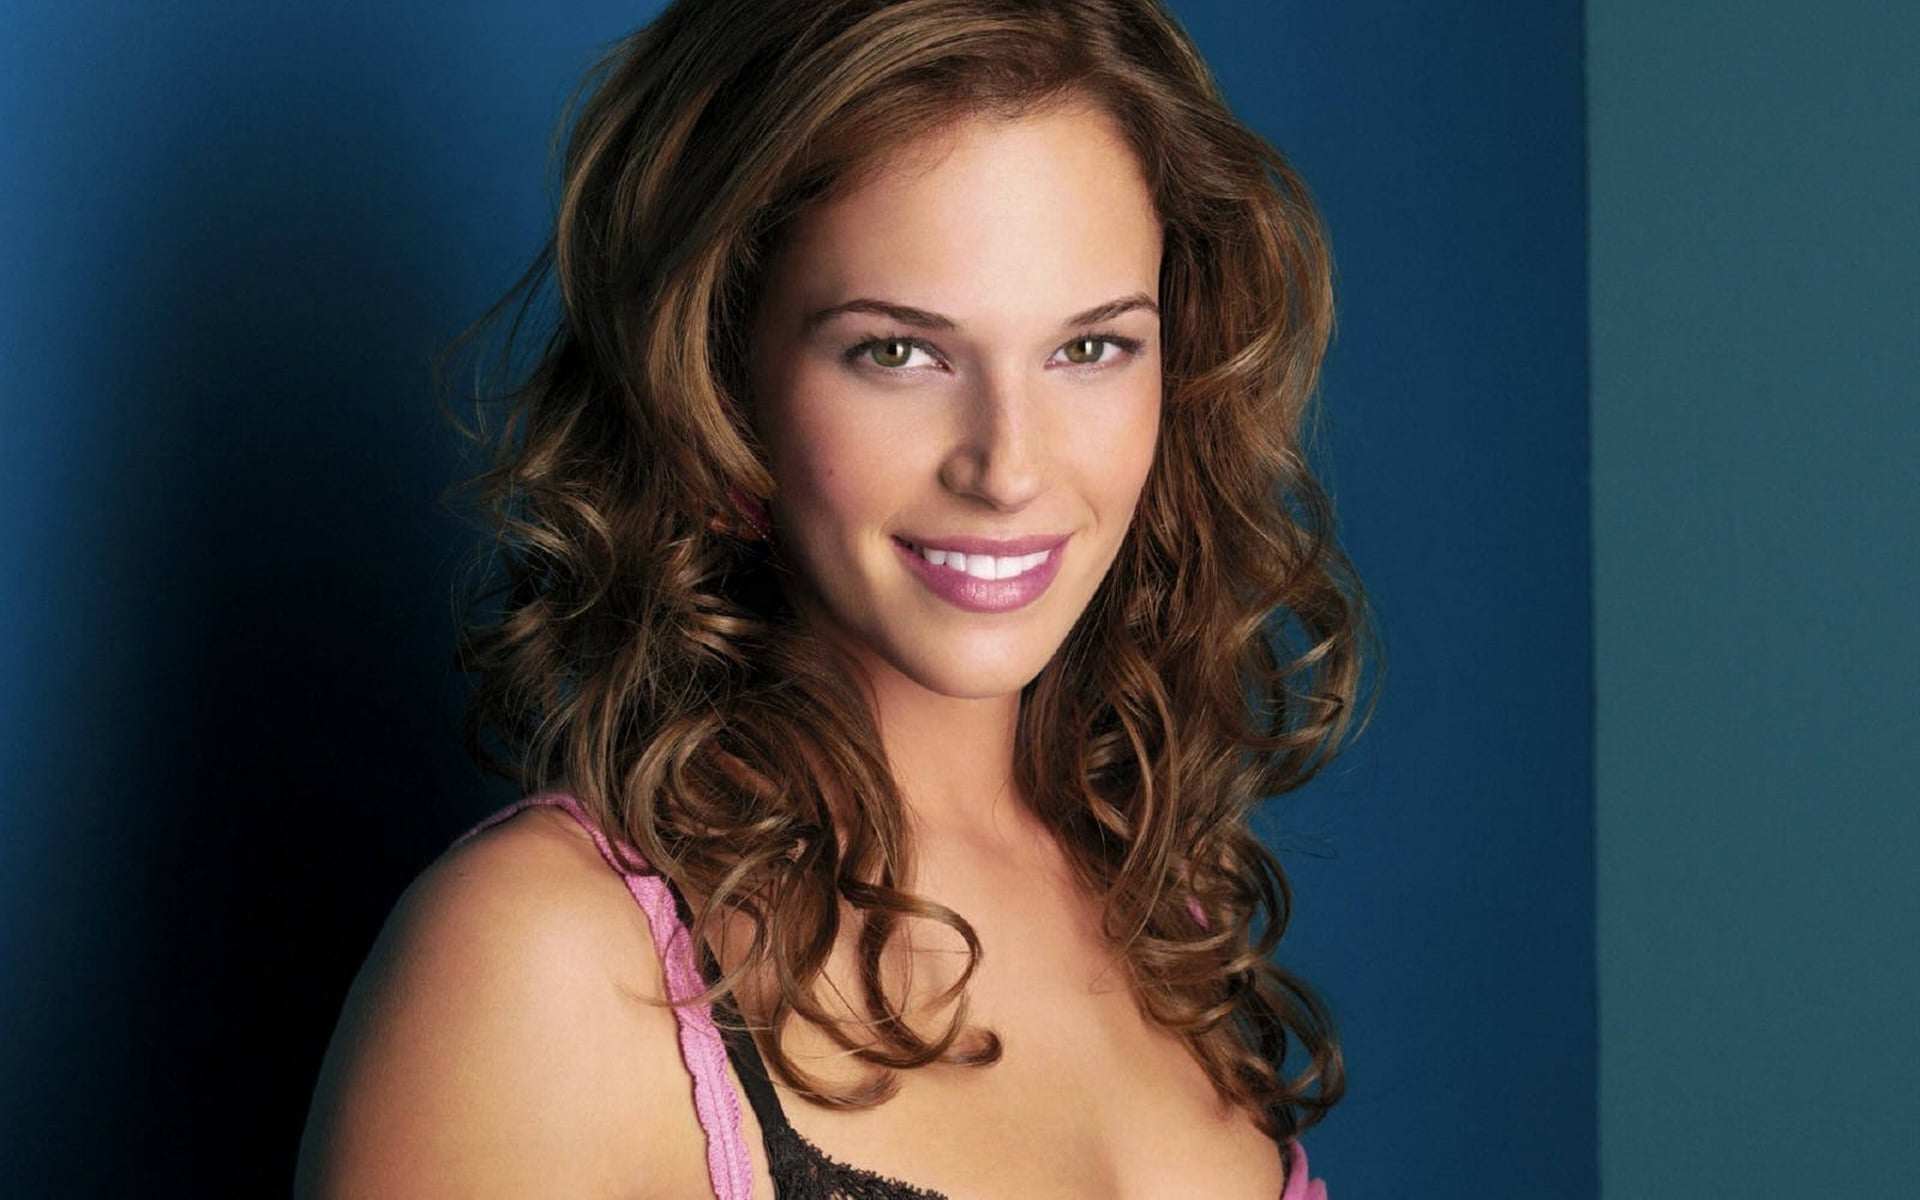 Amanda Righetti 4k wallpaper download